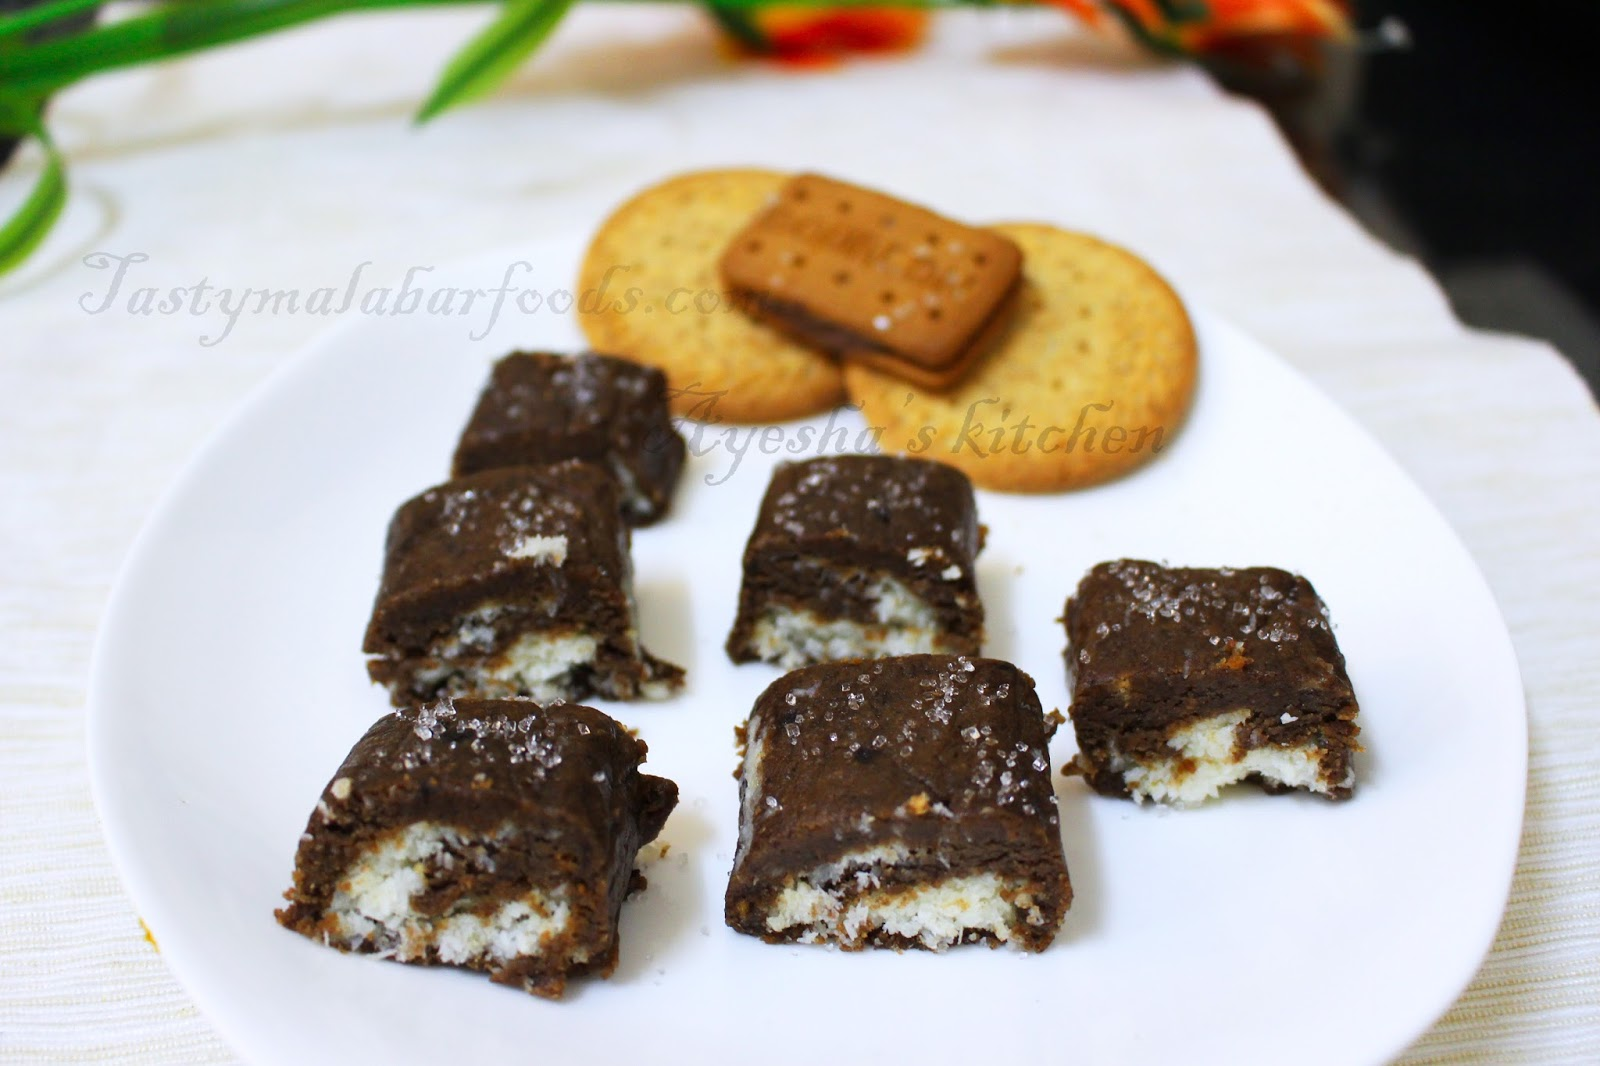 A Very Easy Quick And Delicious Chocolate Roll With Few Ingredients Do Try Enjoy Your Kids